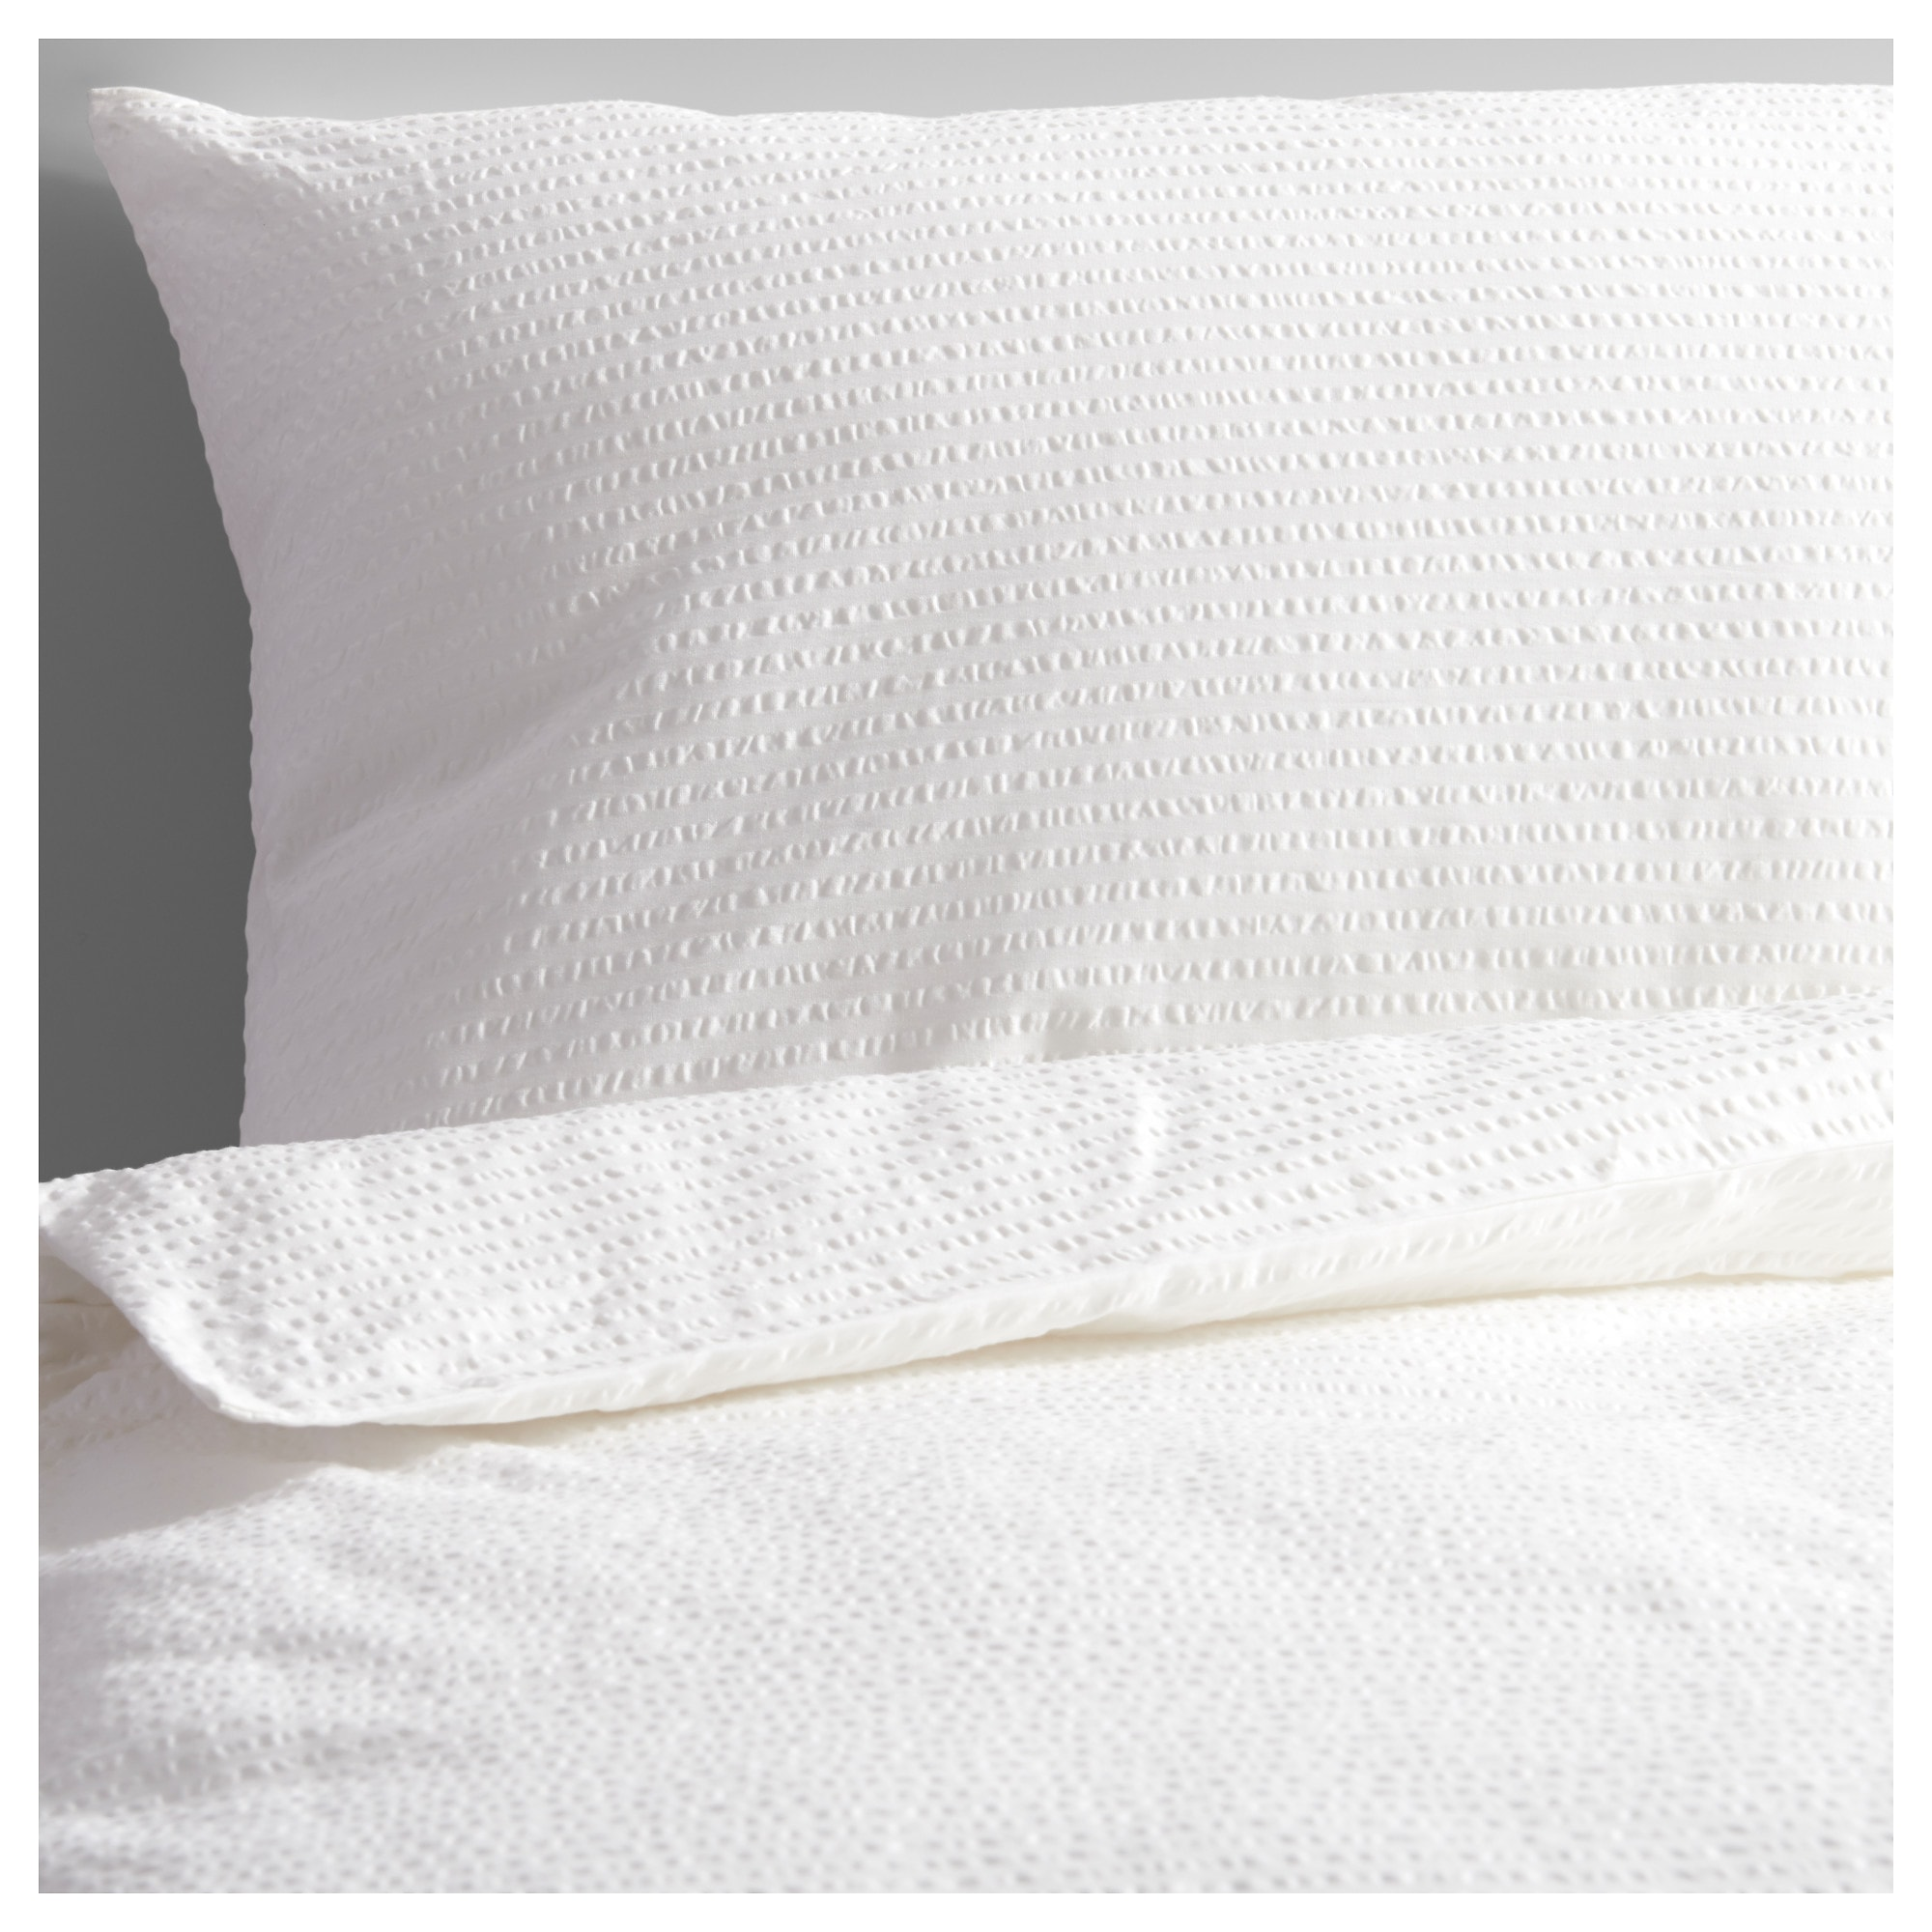 rosenapel quilt cover and 2 pillowcases white thread count 163 inch pillowcase quantity